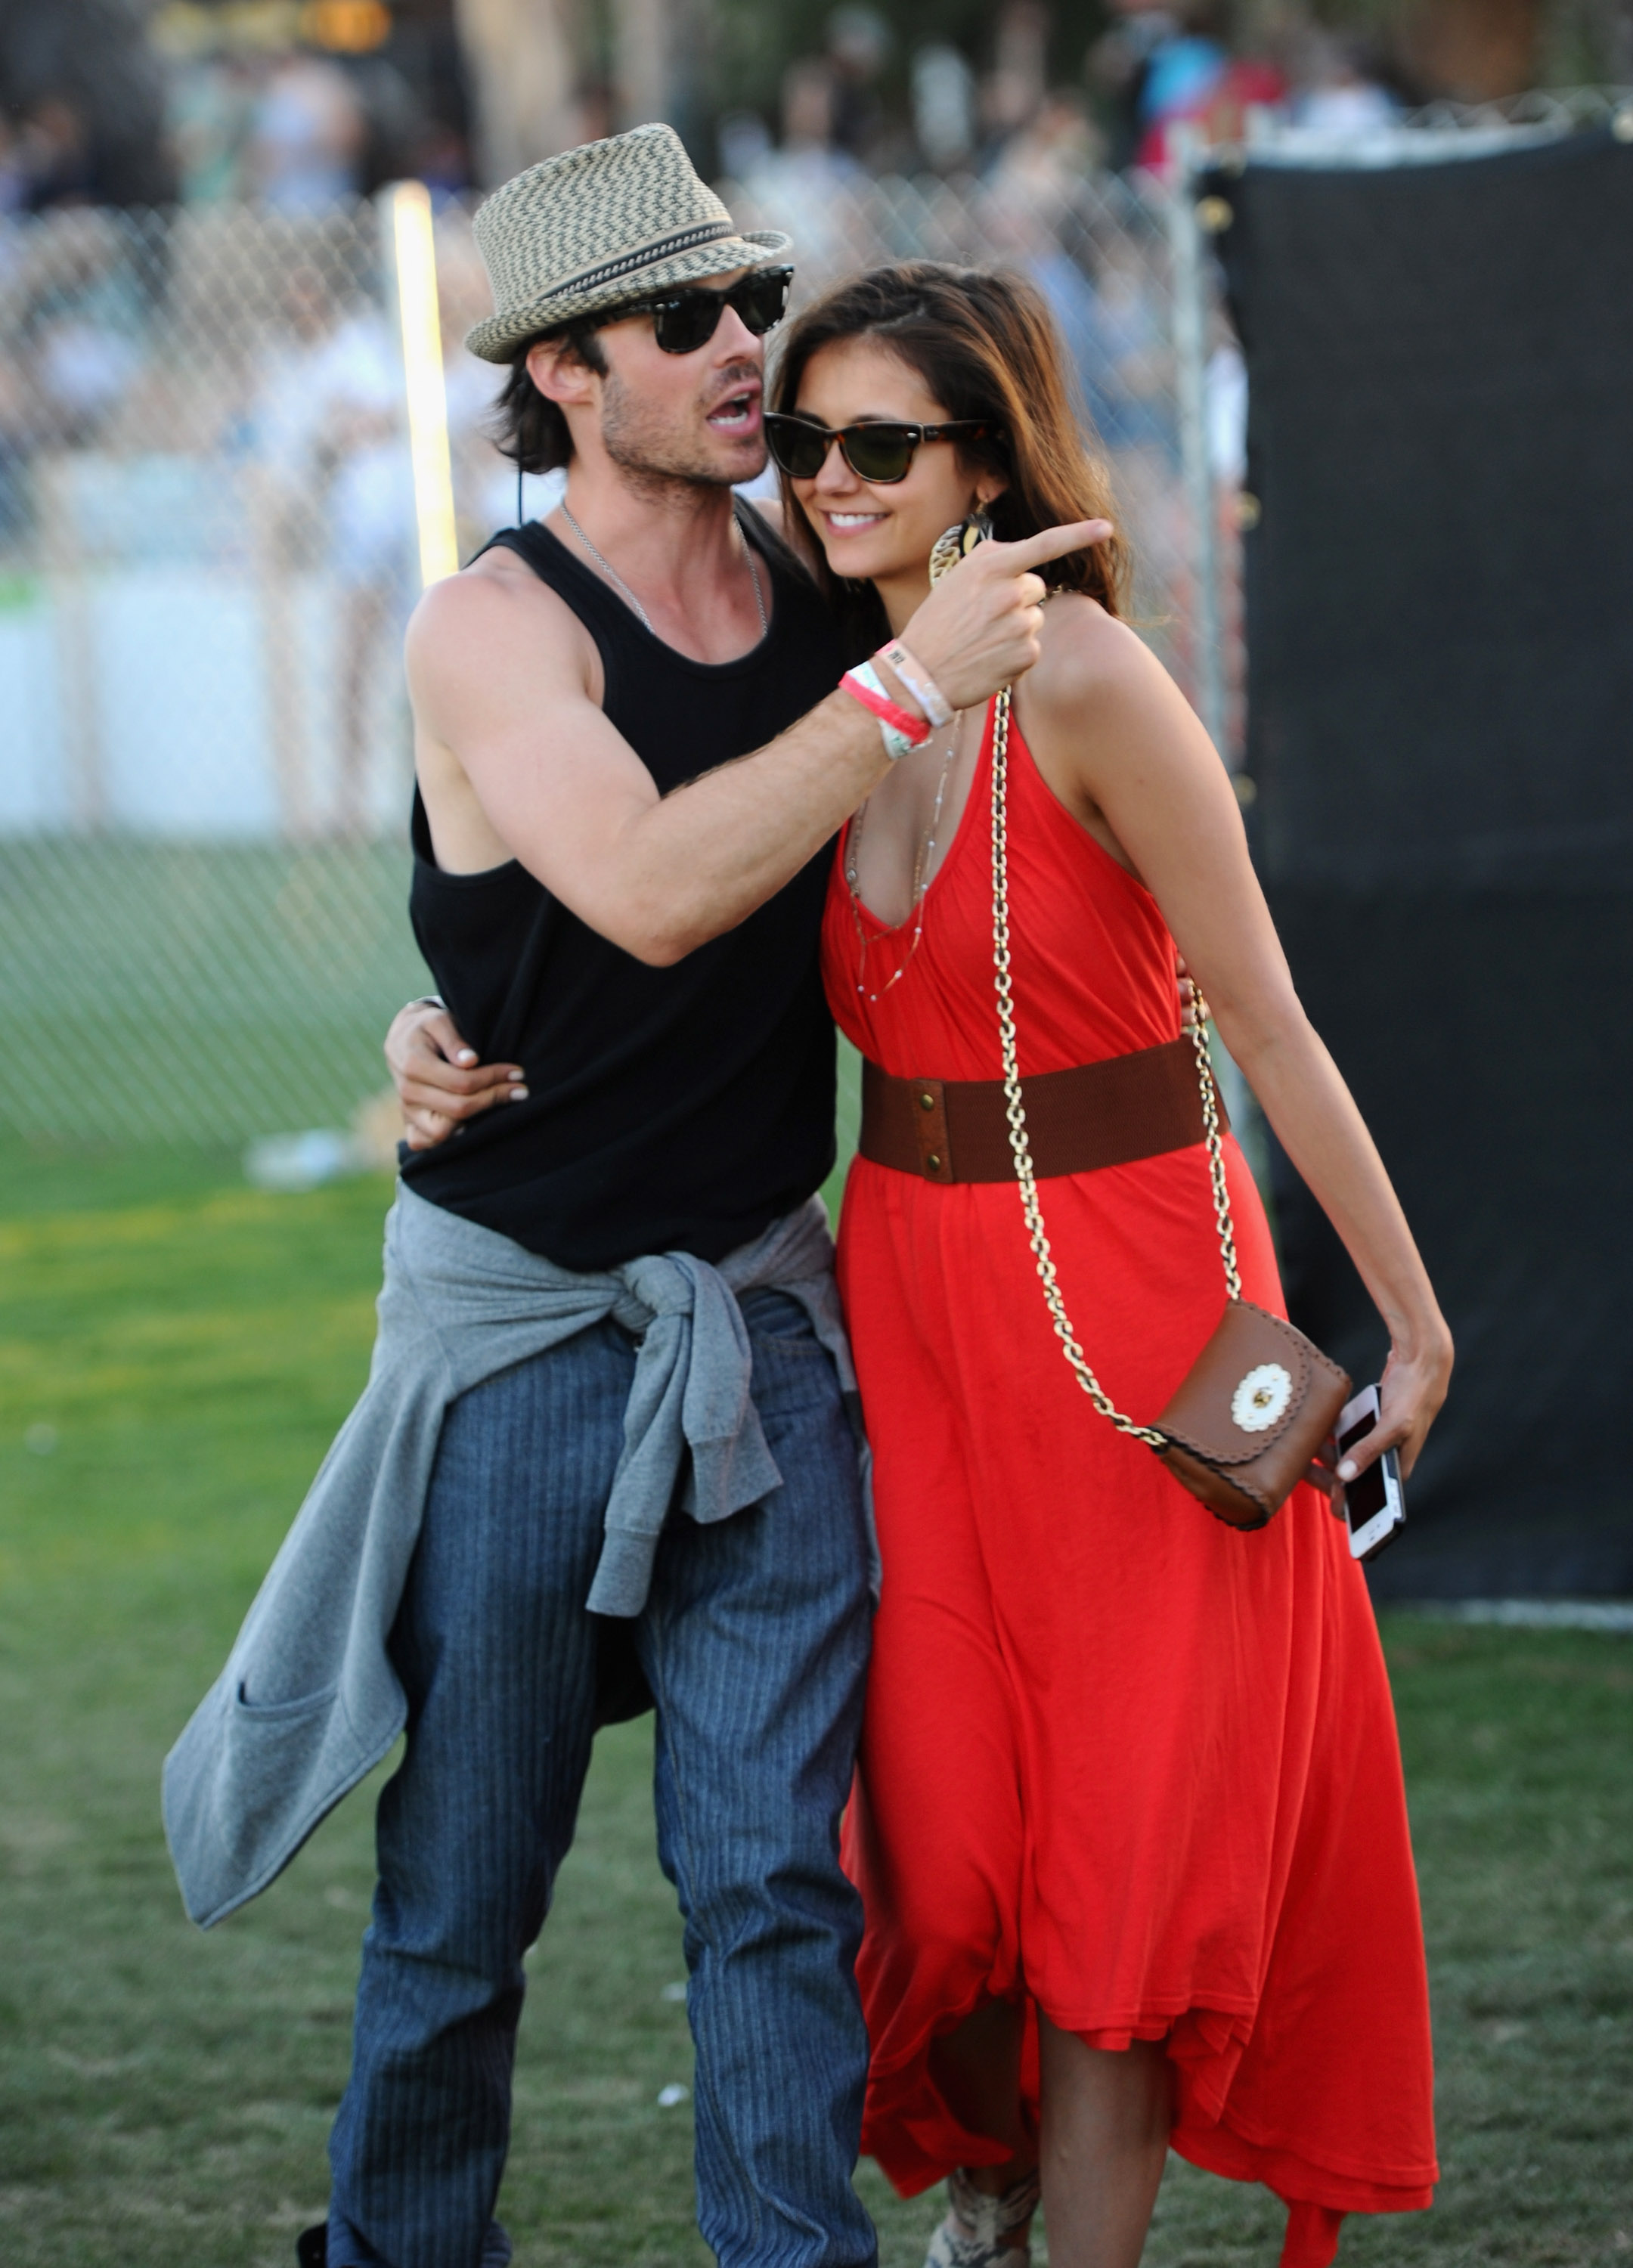 Nina Dobrev and Ian Somerhalder showed PDA on the last day of the festival.